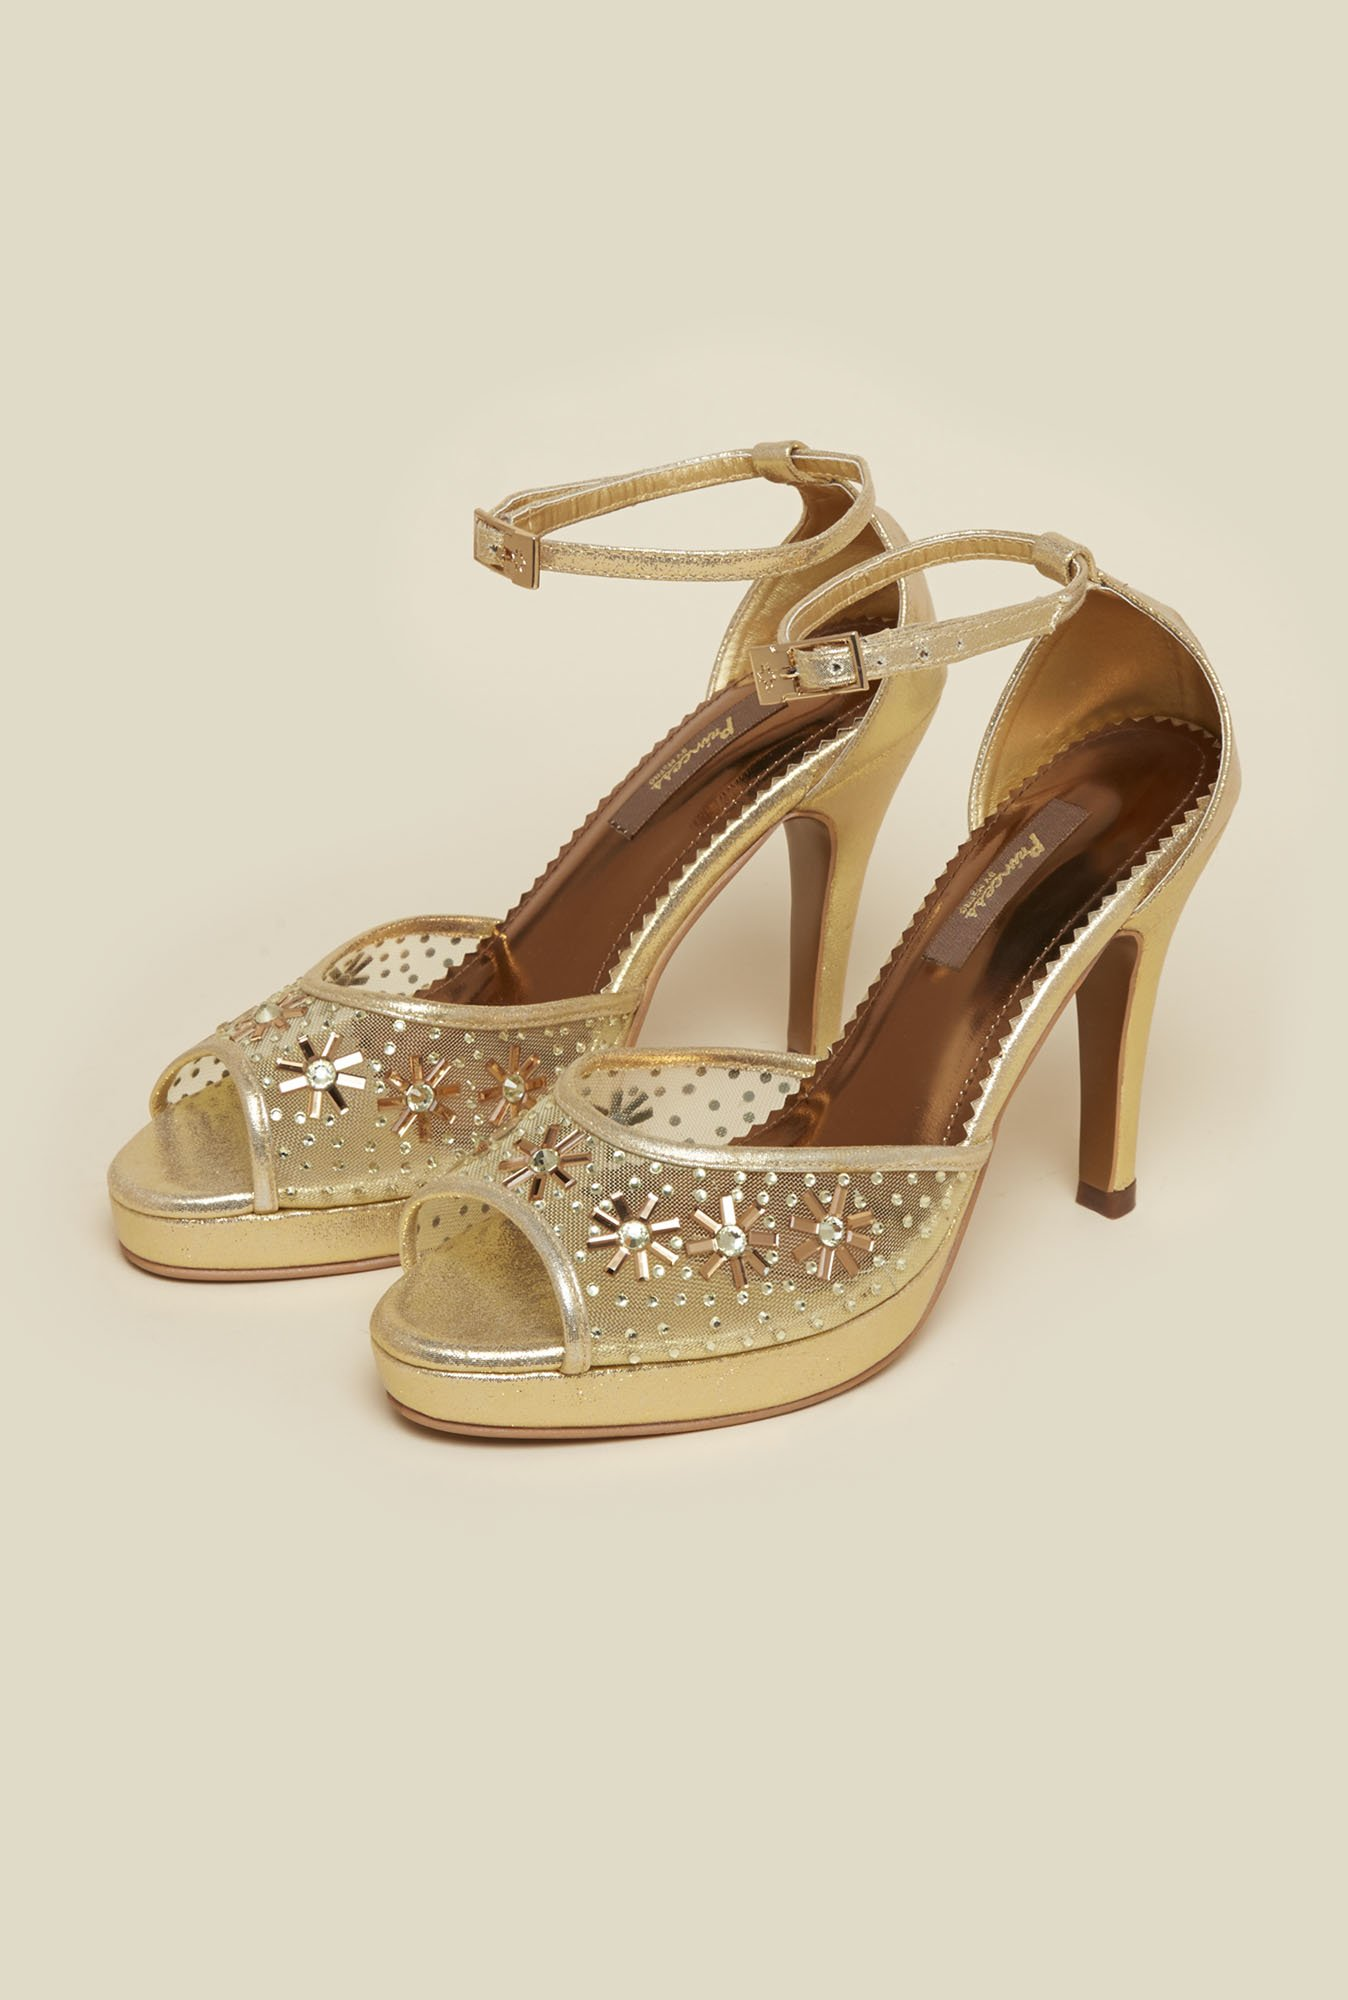 Princess by Metro Gold Stiletto Sandals